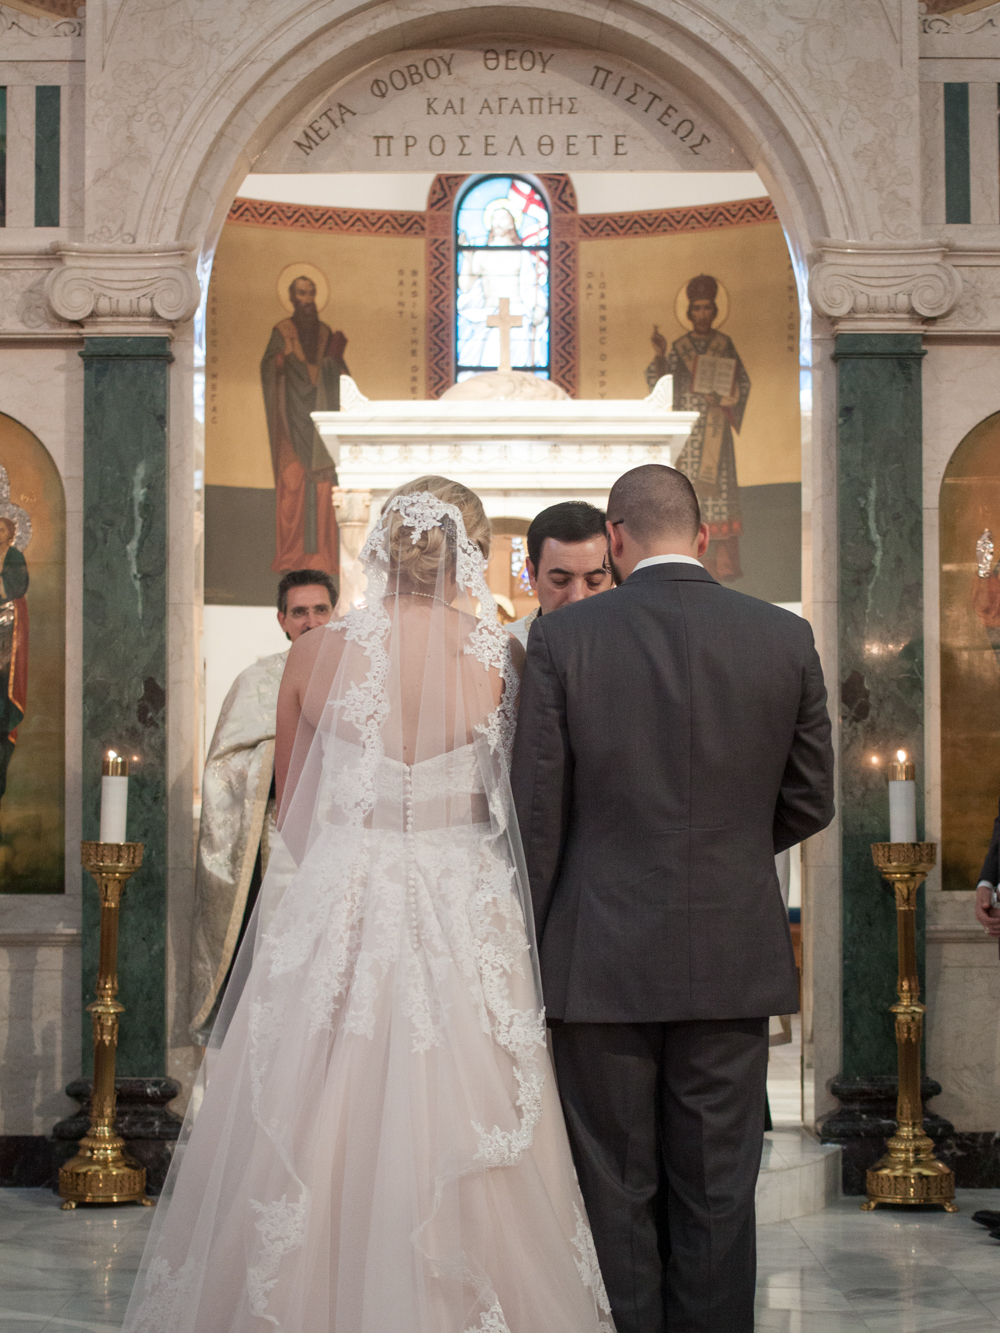 Houston wedding photographer - Christine Gosch - Houston film photographer - greek wedding in Houston - Annunciation Greek Orthodox church in Houston, Texas - Houston wedding planner -29.jpg